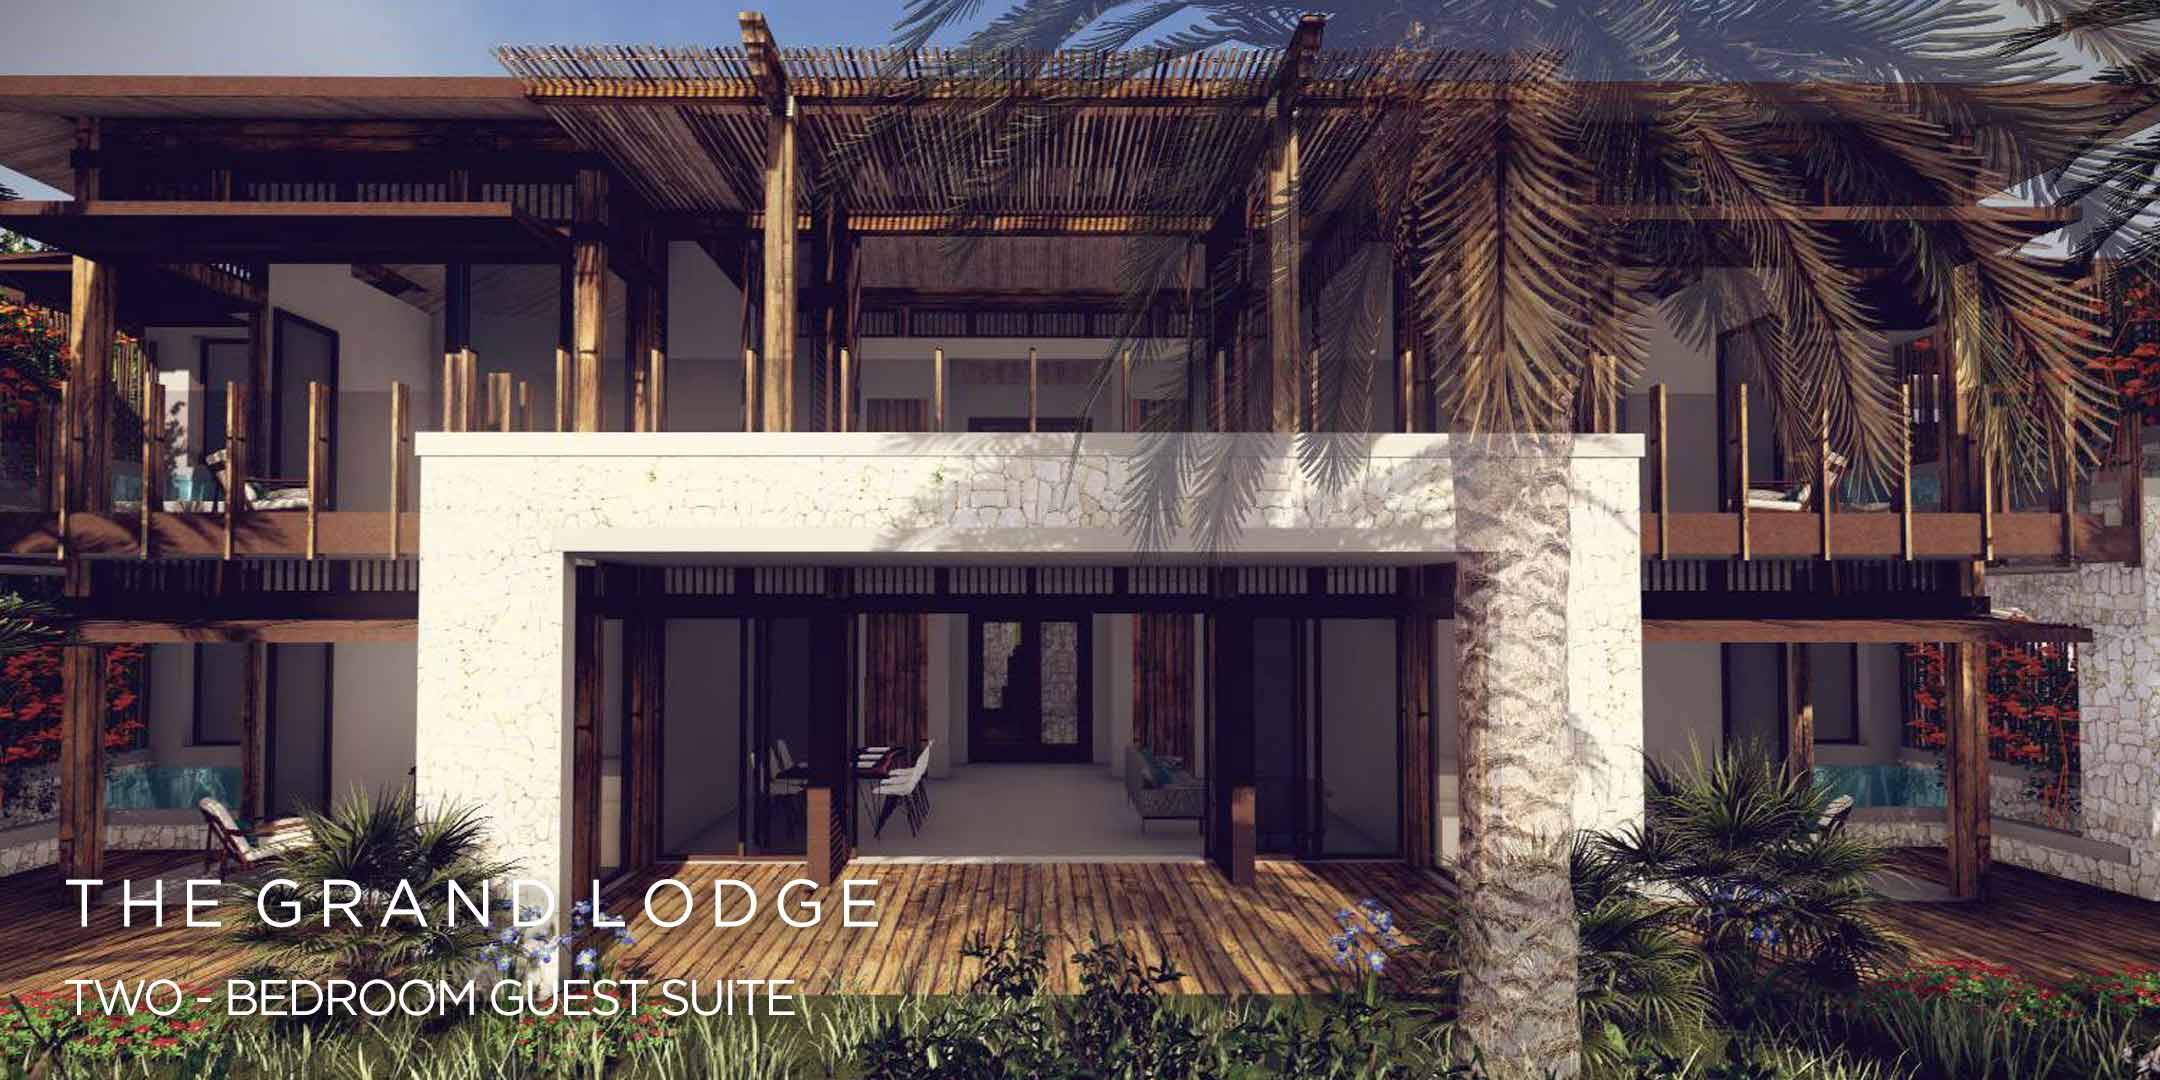 GL-2Bed-Suite-Image-Rectangle-2160x1080